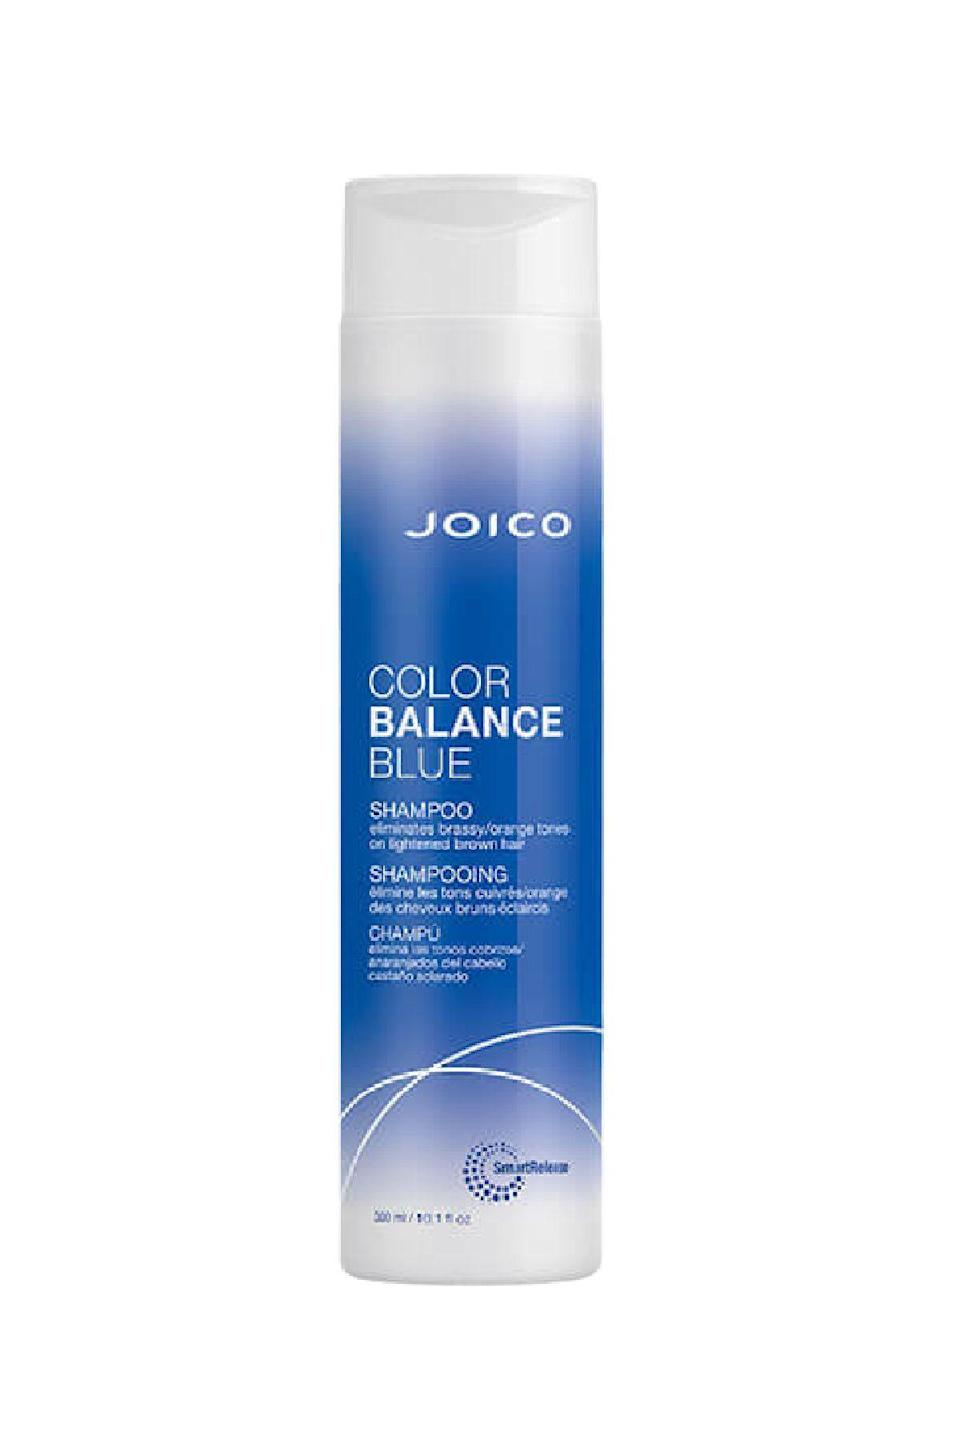 "<p><strong>Joico</strong></p><p>ulta.com</p><p><strong>$19.00</strong></p><p><a href=""https://go.redirectingat.com?id=74968X1596630&url=https%3A%2F%2Fwww.ulta.com%2Fcolor-balance-blue-shampoo%3FproductId%3Dpimprod2021420&sref=https%3A%2F%2Fwww.marieclaire.com%2Fbeauty%2Fhair%2Fg35970445%2Fbest-blue-shampoo-for-brunettes%2F"" rel=""nofollow noopener"" target=""_blank"" data-ylk=""slk:SHOP IT"" class=""link rapid-noclick-resp"">SHOP IT</a></p><p>Incorporate this creamy lather into your cleansing routine once or twice a week, and expect pitch-perfect color (and enhanced shine and gloss thanks to rosa canina fruit oil) for at least twelve weeks.</p>"